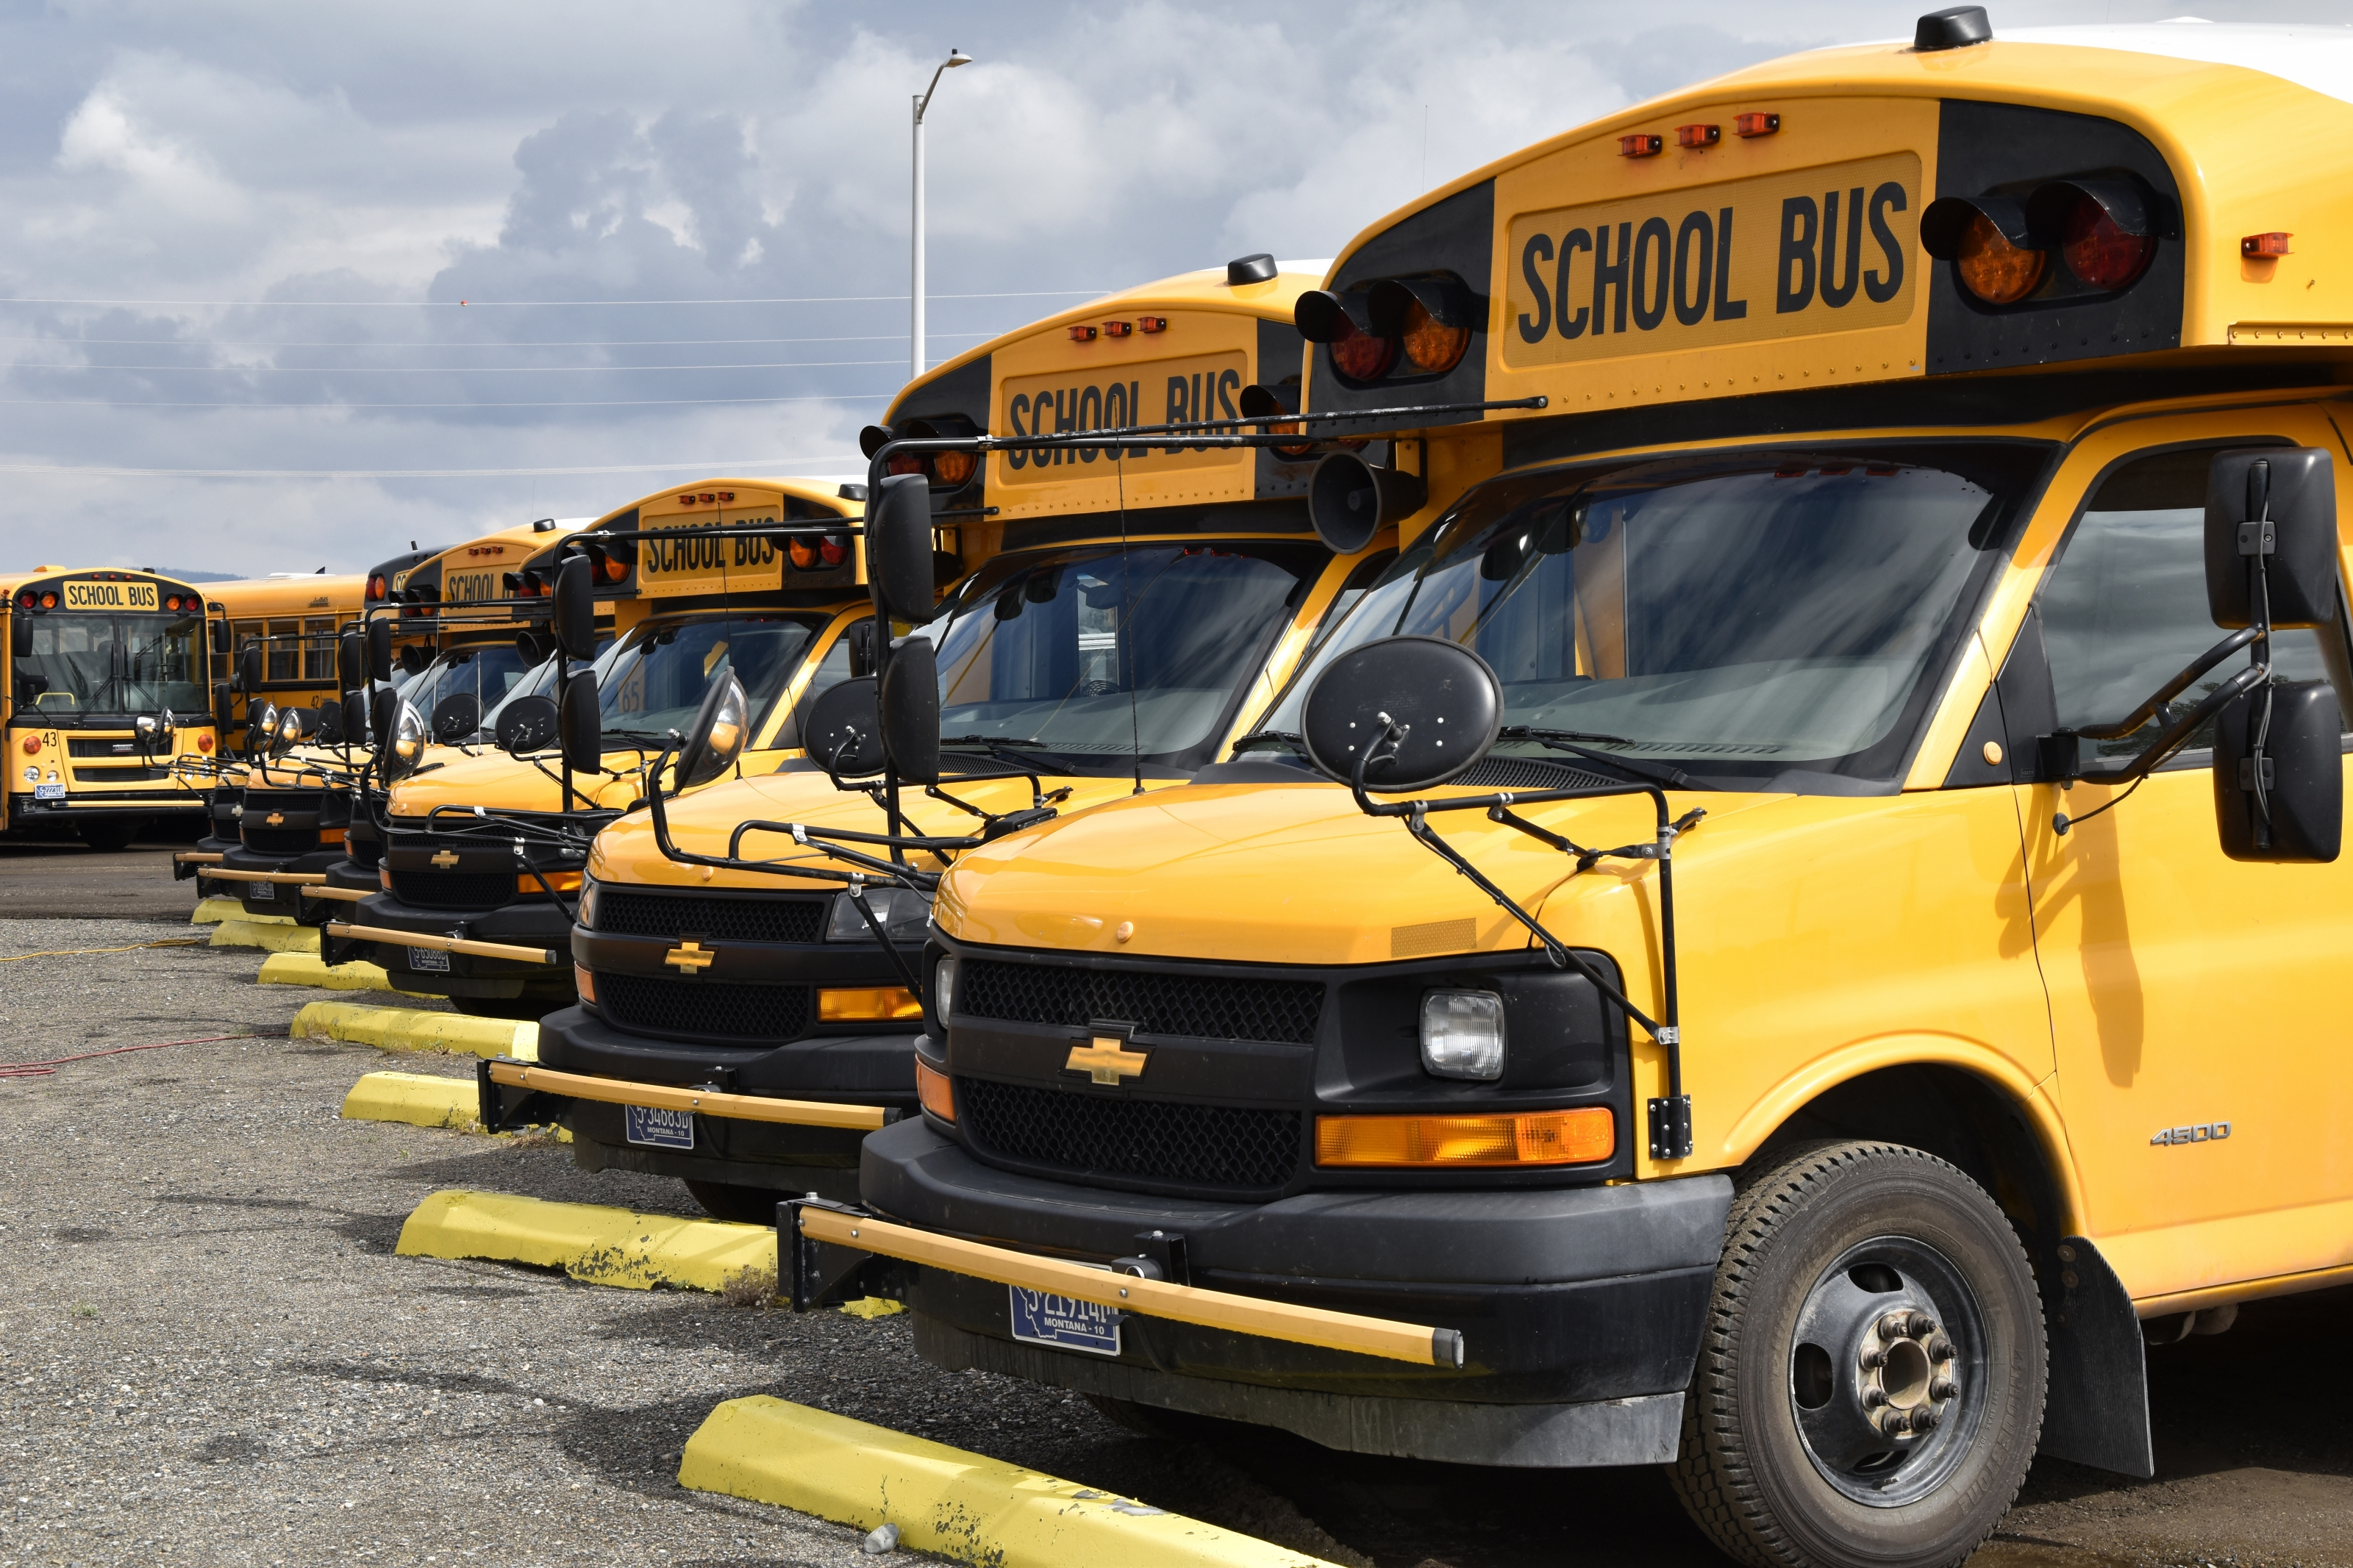 Prince George's Co., other school systems facing bus driver shortage